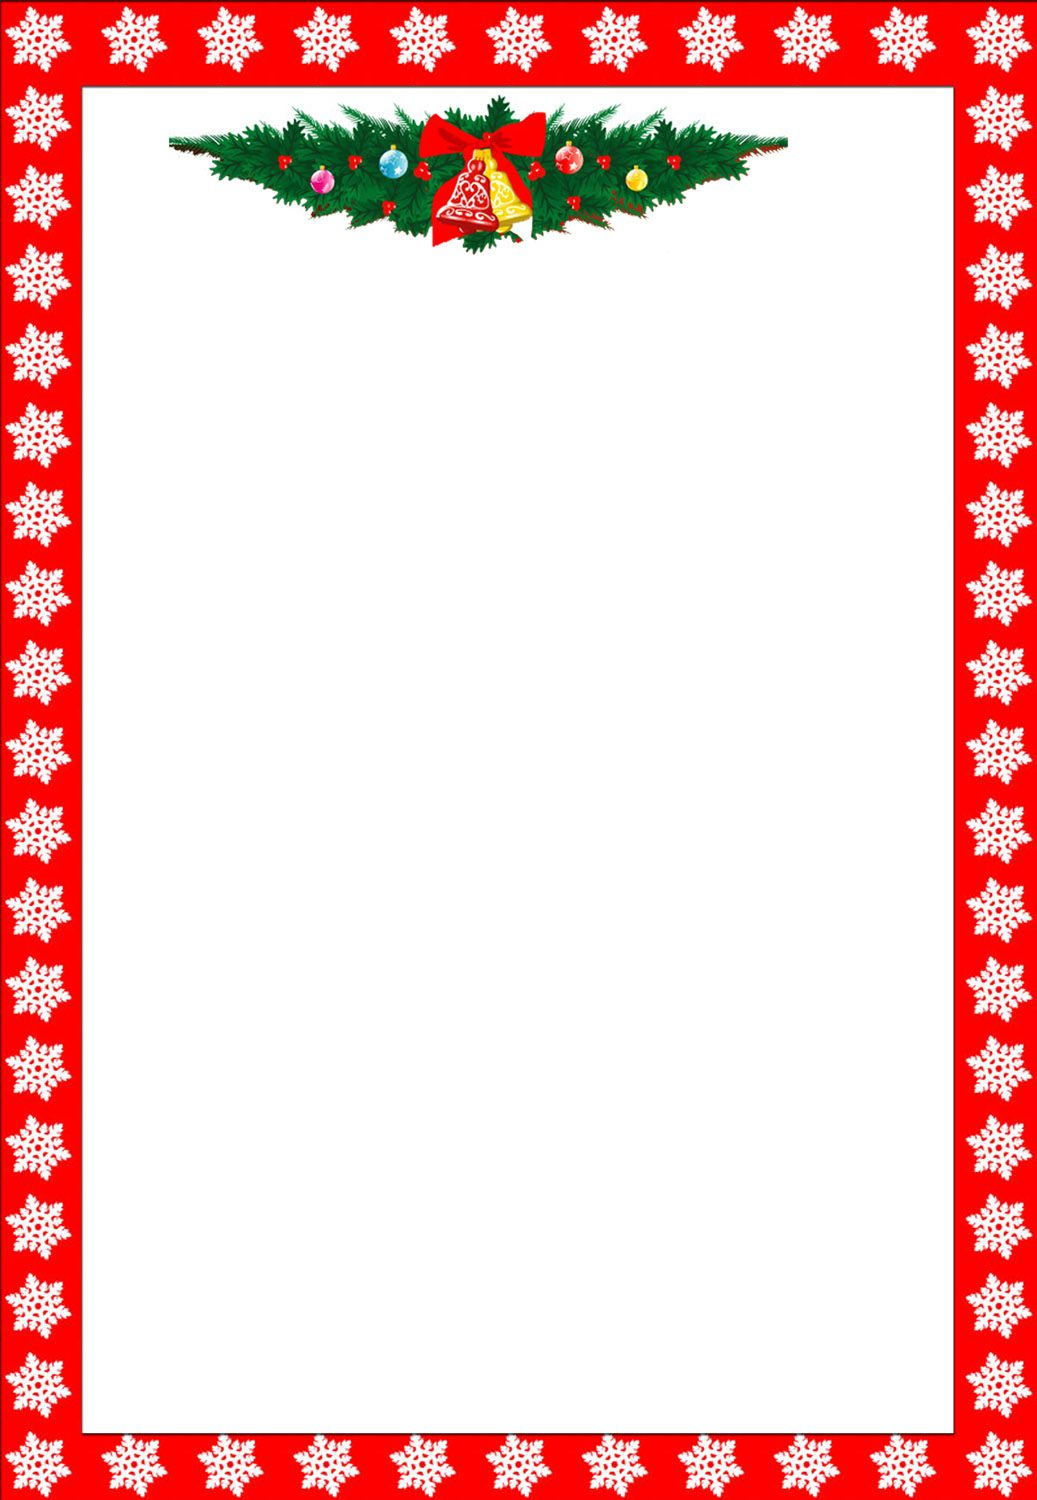 christmas letter border template example-Christmas Clip Art Borders 10-r